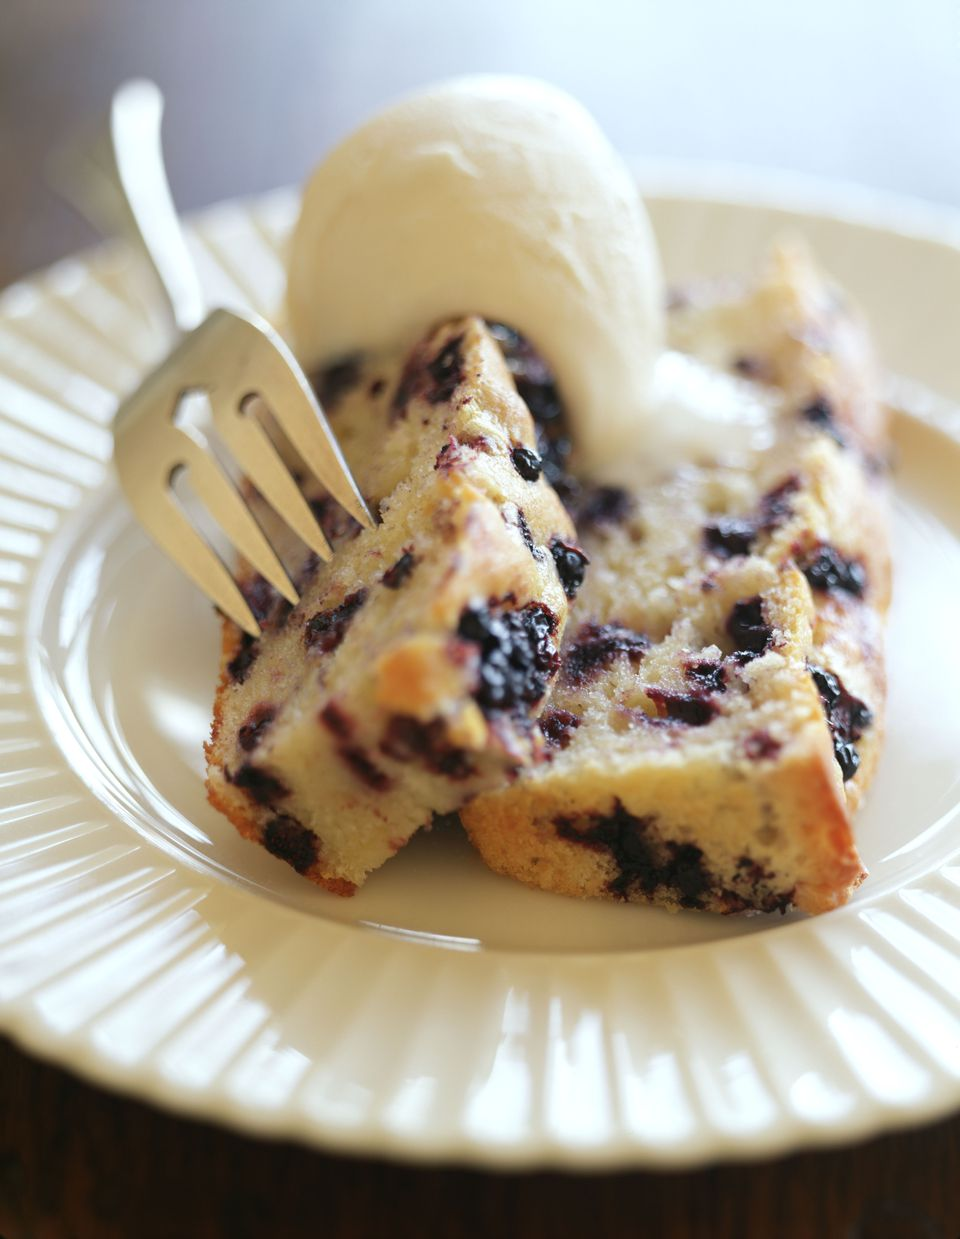 Blueberry poundcake a la mode